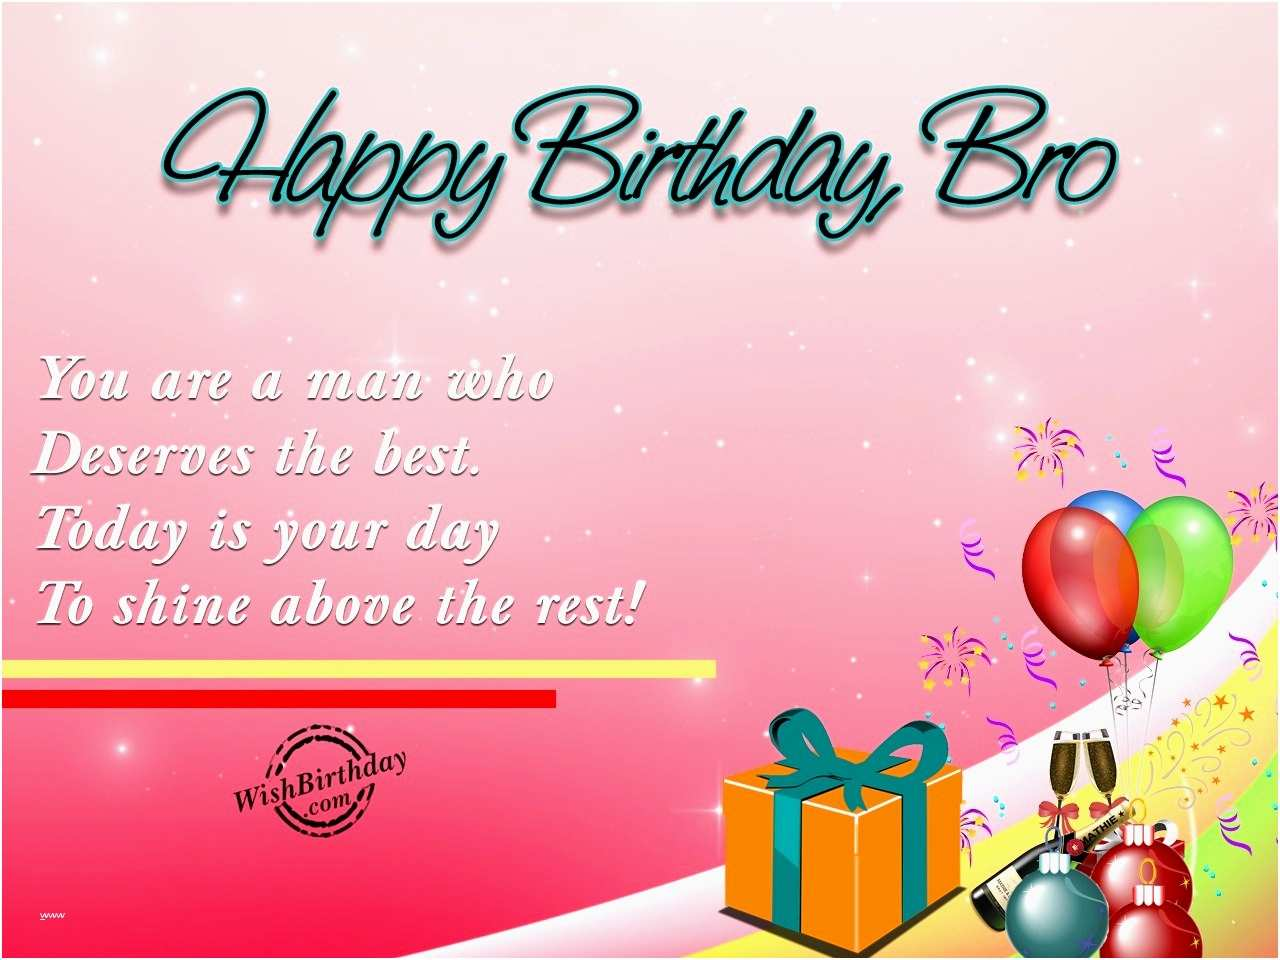 birthday card email templates free ; free-birthday-cards-printable-luxury-birthday-card-email-template-best-birthday-invite-template-of-free-birthday-cards-printable